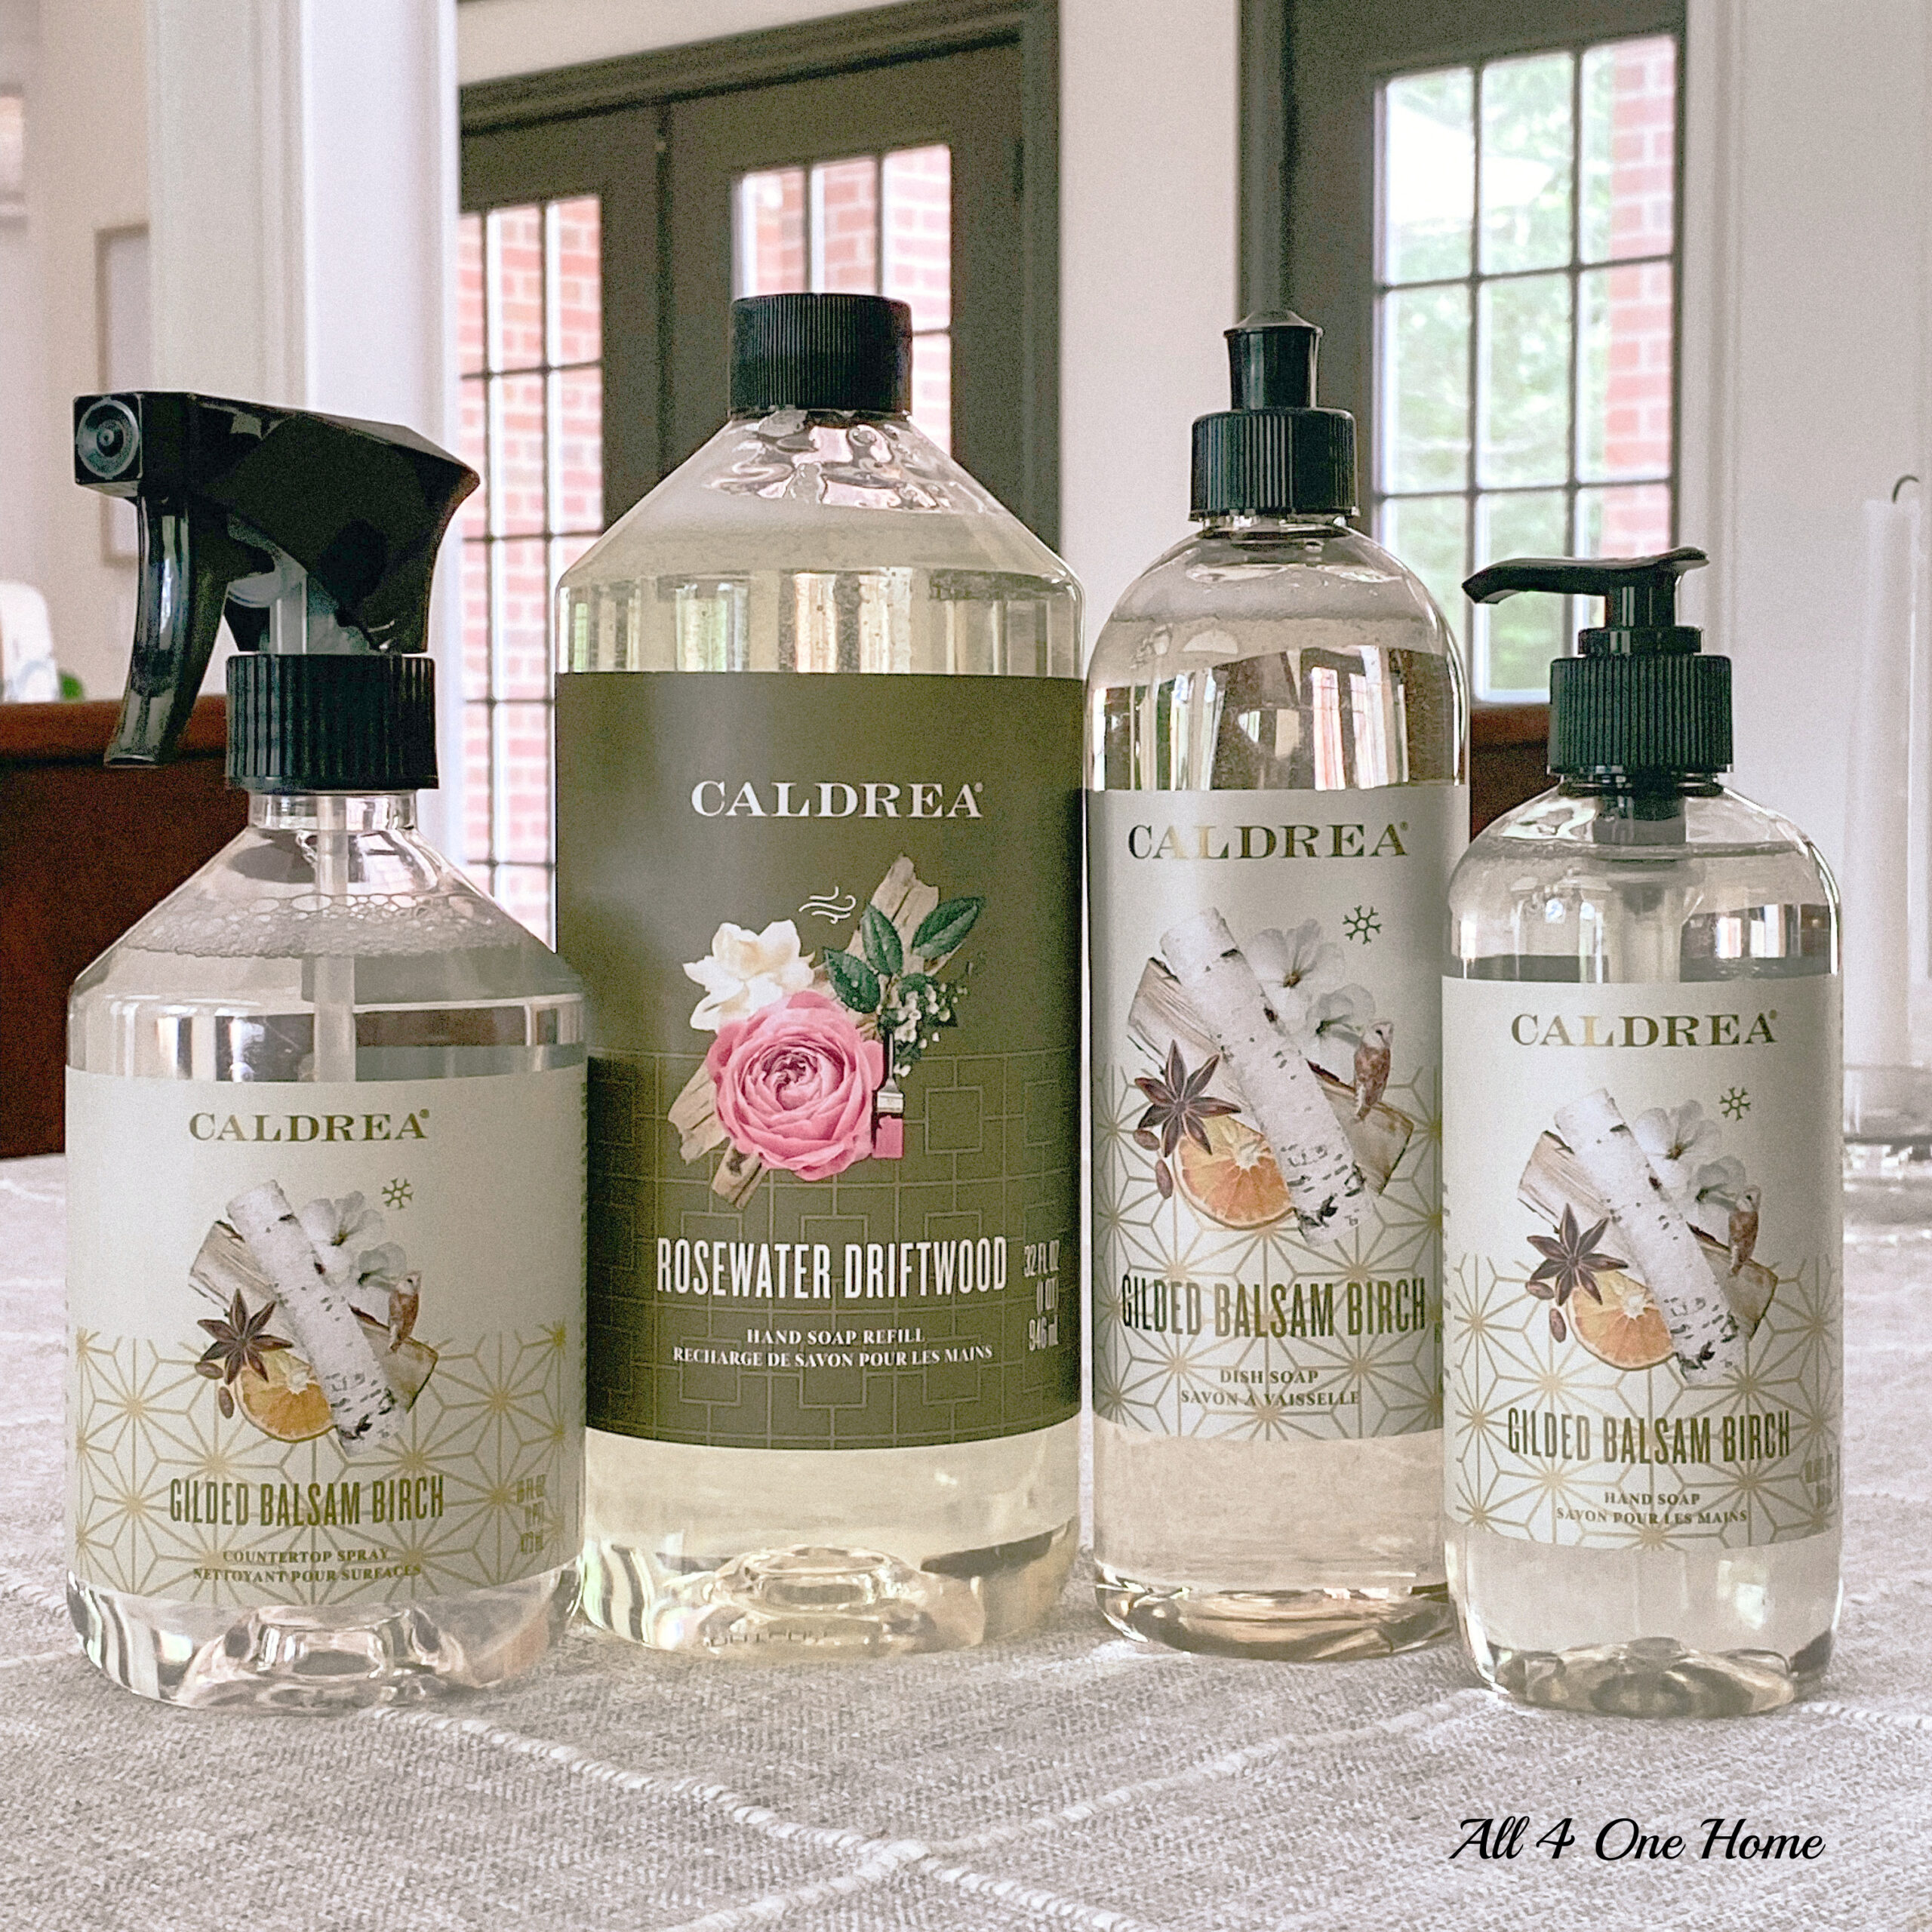 My signature home scents